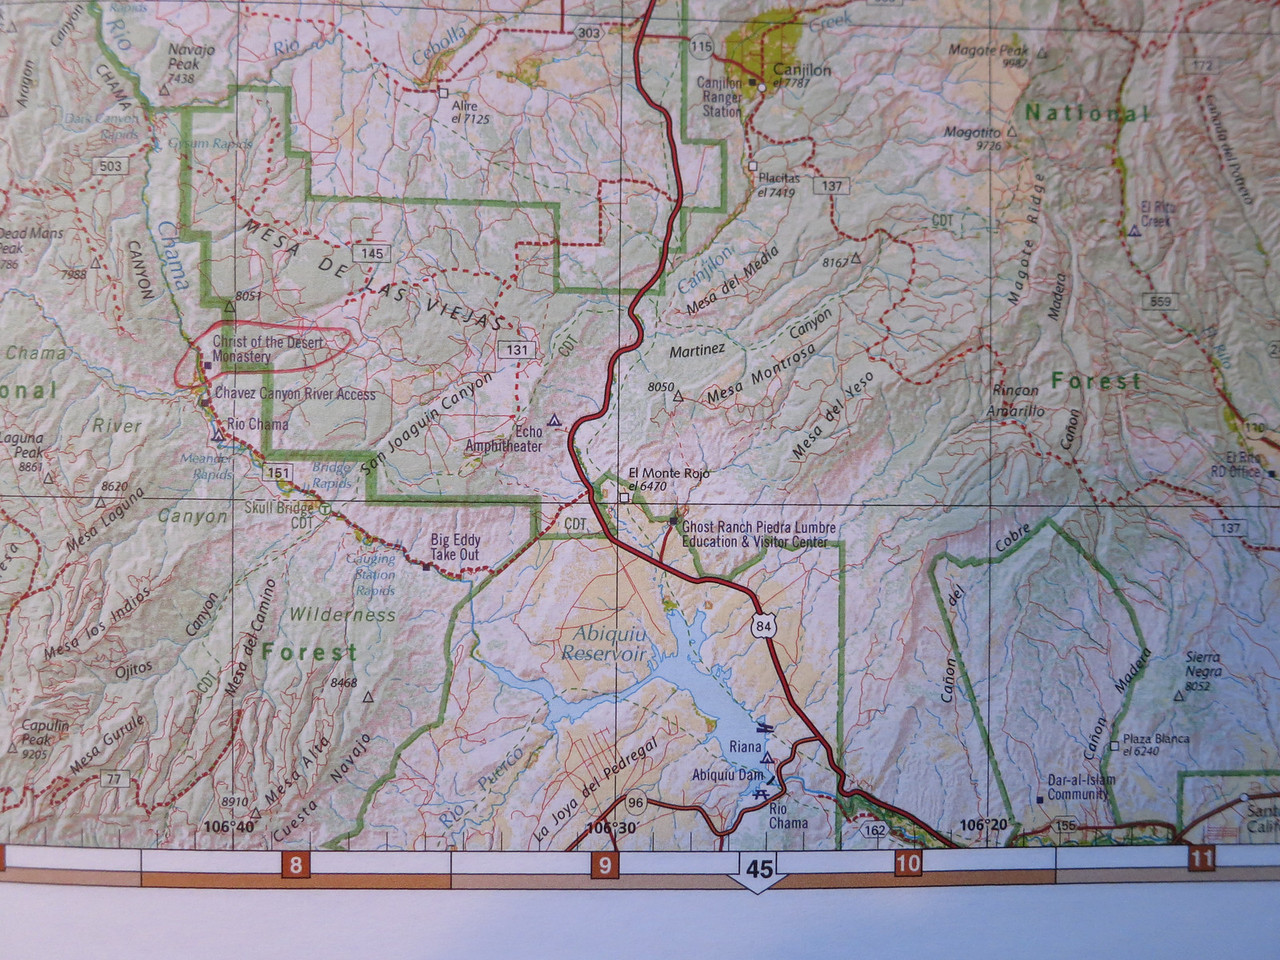 Abiquiu is now off the bottom edge of the map, but this shows the dotted 151 turnoff from 84.